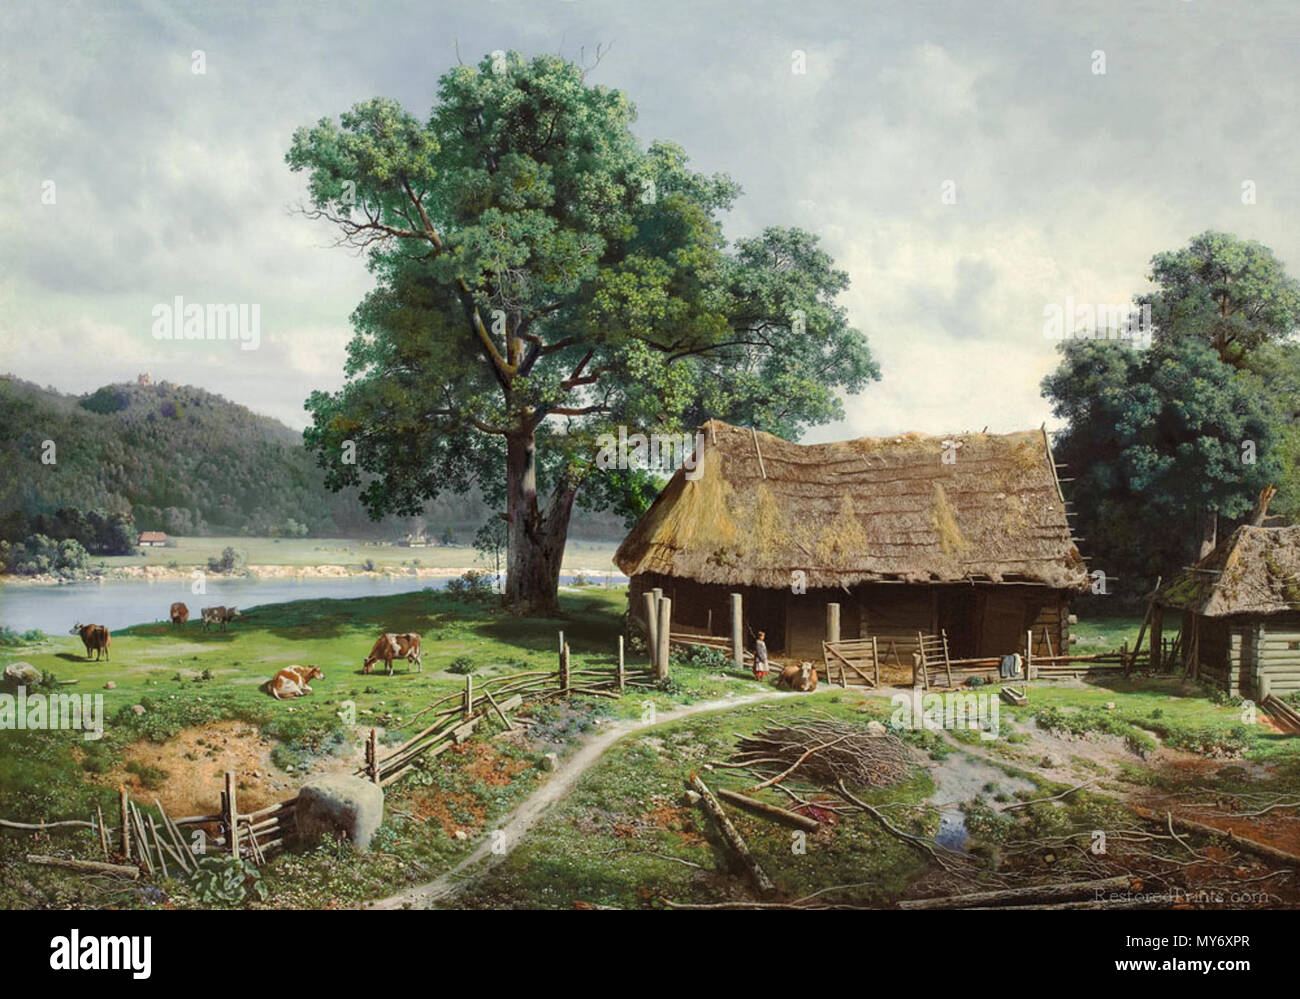 .  English: A view of the River Gauja from the estate of Zegevald, Latvia. The painting that led to the creation of the Russian art group called 'The Wanderers' or 'The Itinerants'. . 1 June 1858 363 Mikhail Konstantinovich Klodt - Riverside Farmstead, 1858 - Stock Image